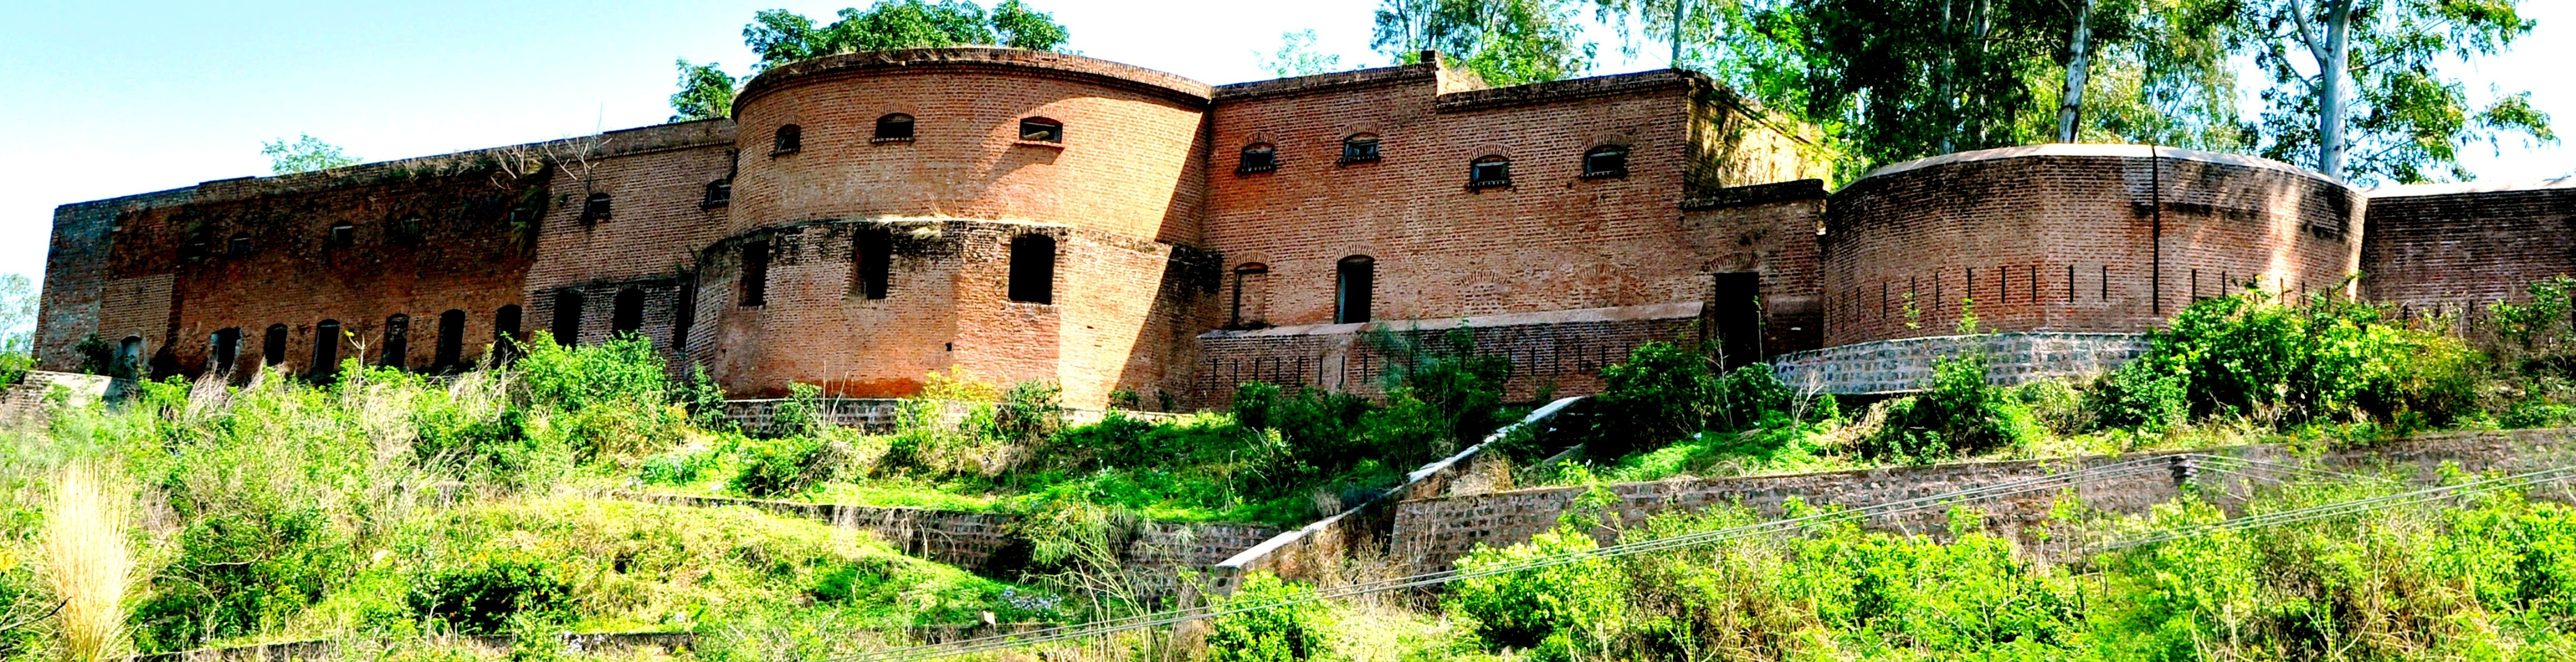 SAMBA FORT FRONT VIEW LOCATED IN SAMBA TOWN